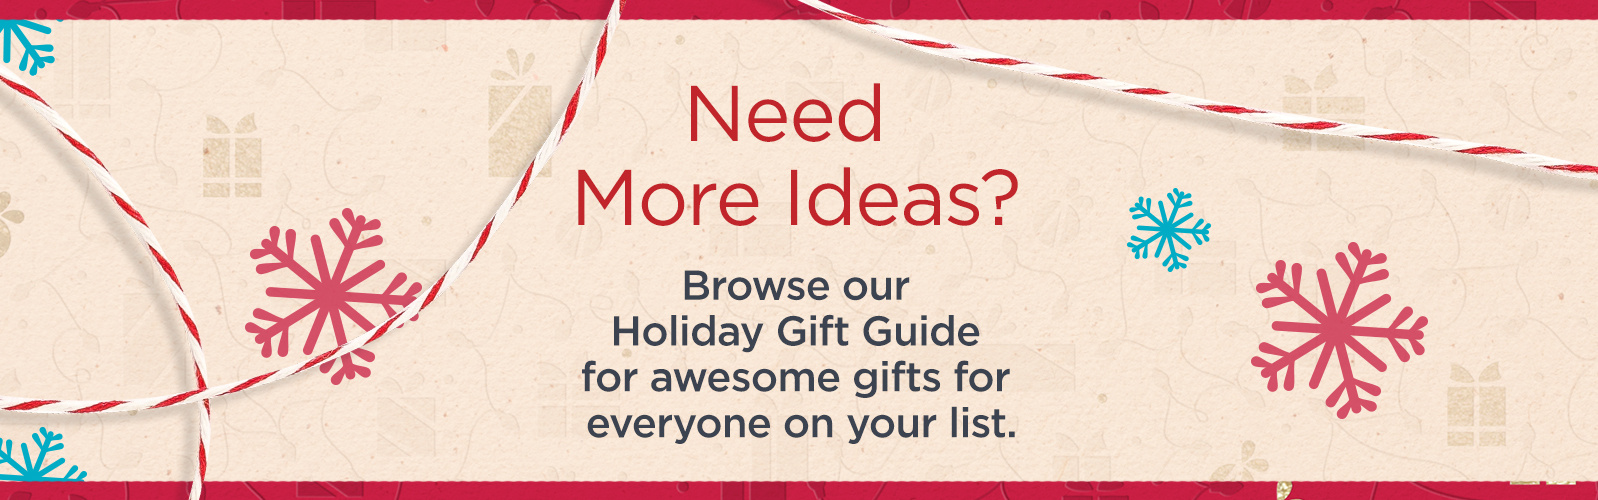 Need More Ideas?  Browse our Holiday Gift Guide for awesome gifts for everyone on your list.